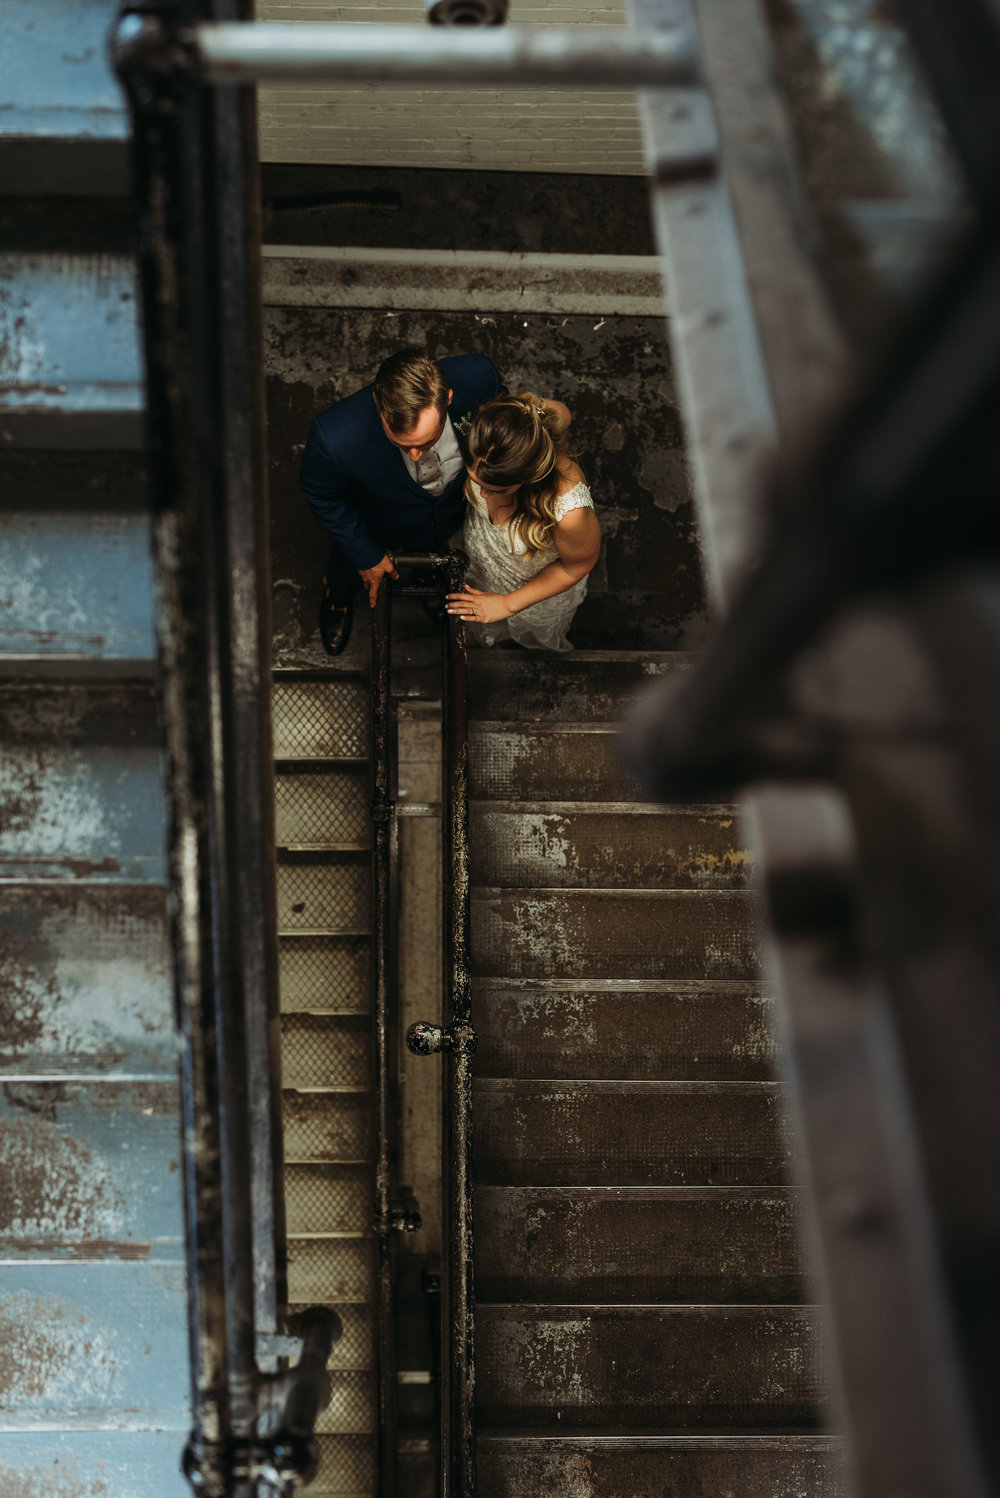 bride-groom-staircase-toronto-rustic-boho-airship37-wedding-by-willow-birch-photo-toronto-documentary-wedding-photographers.jpg